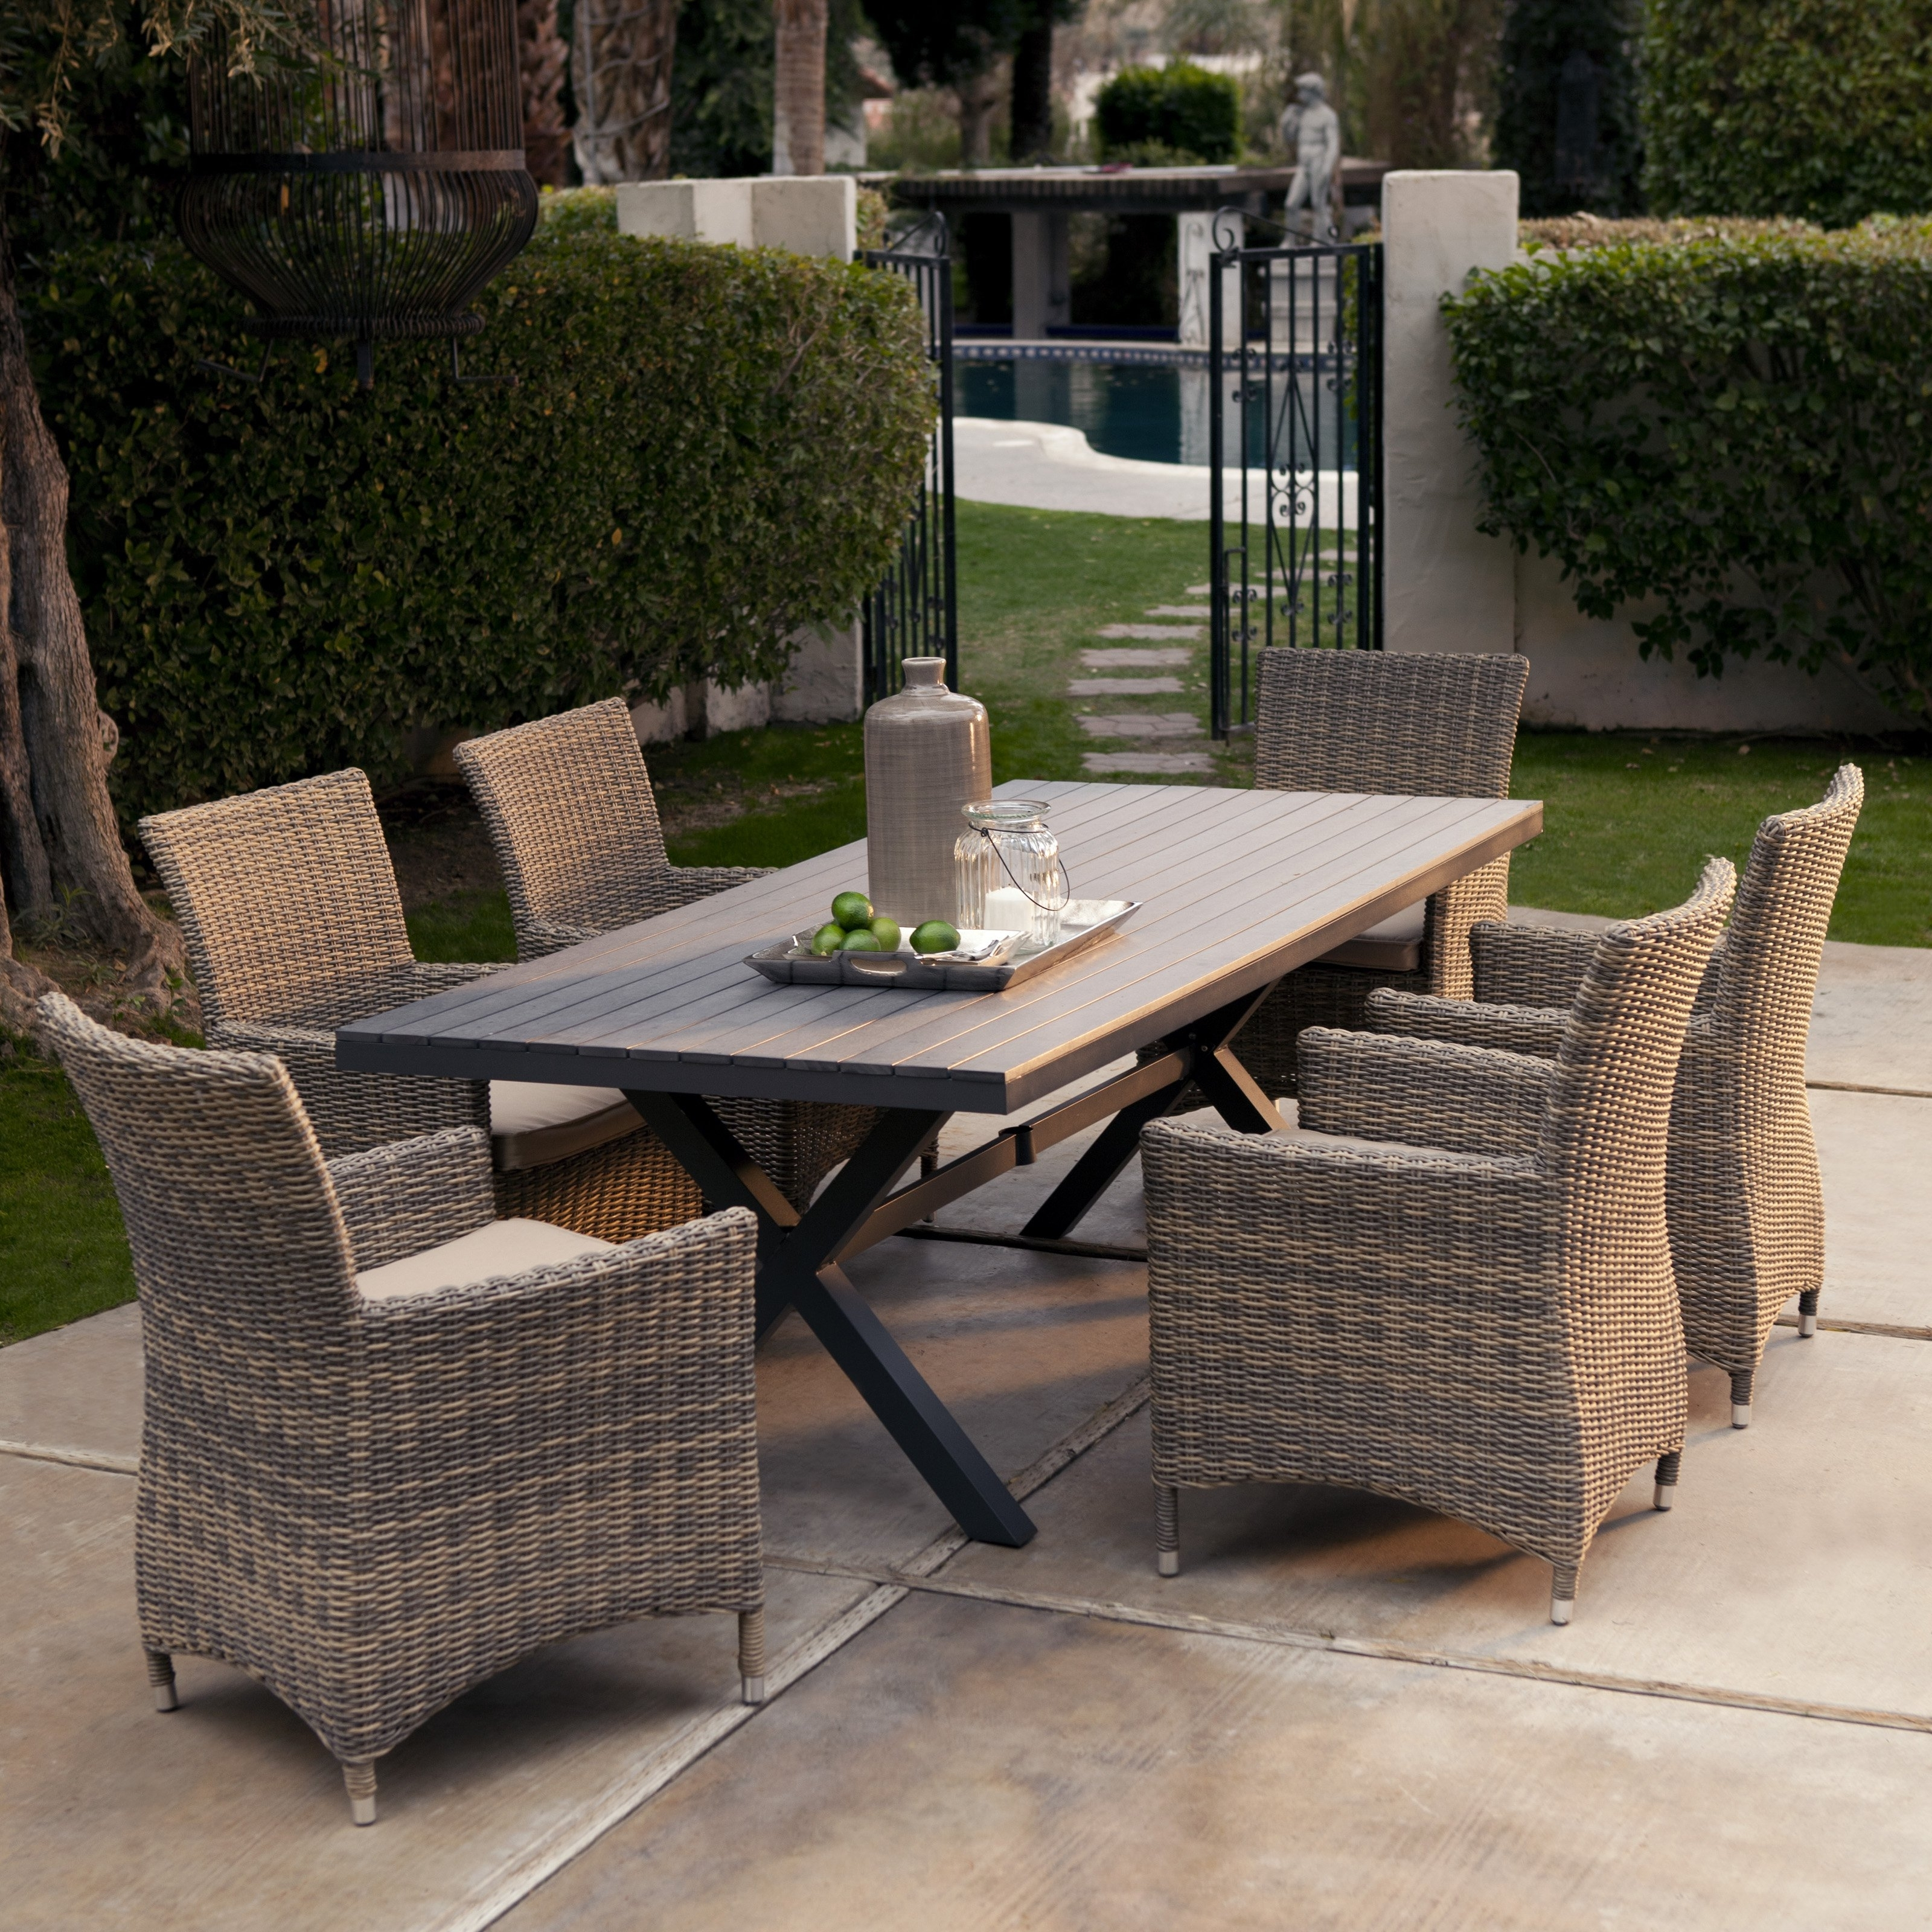 Furniture : Furniture Outdoor Patio Cushions Sunbrella Fabric In With Regard To Famous Outdoor Sofas And Chairs (View 5 of 20)